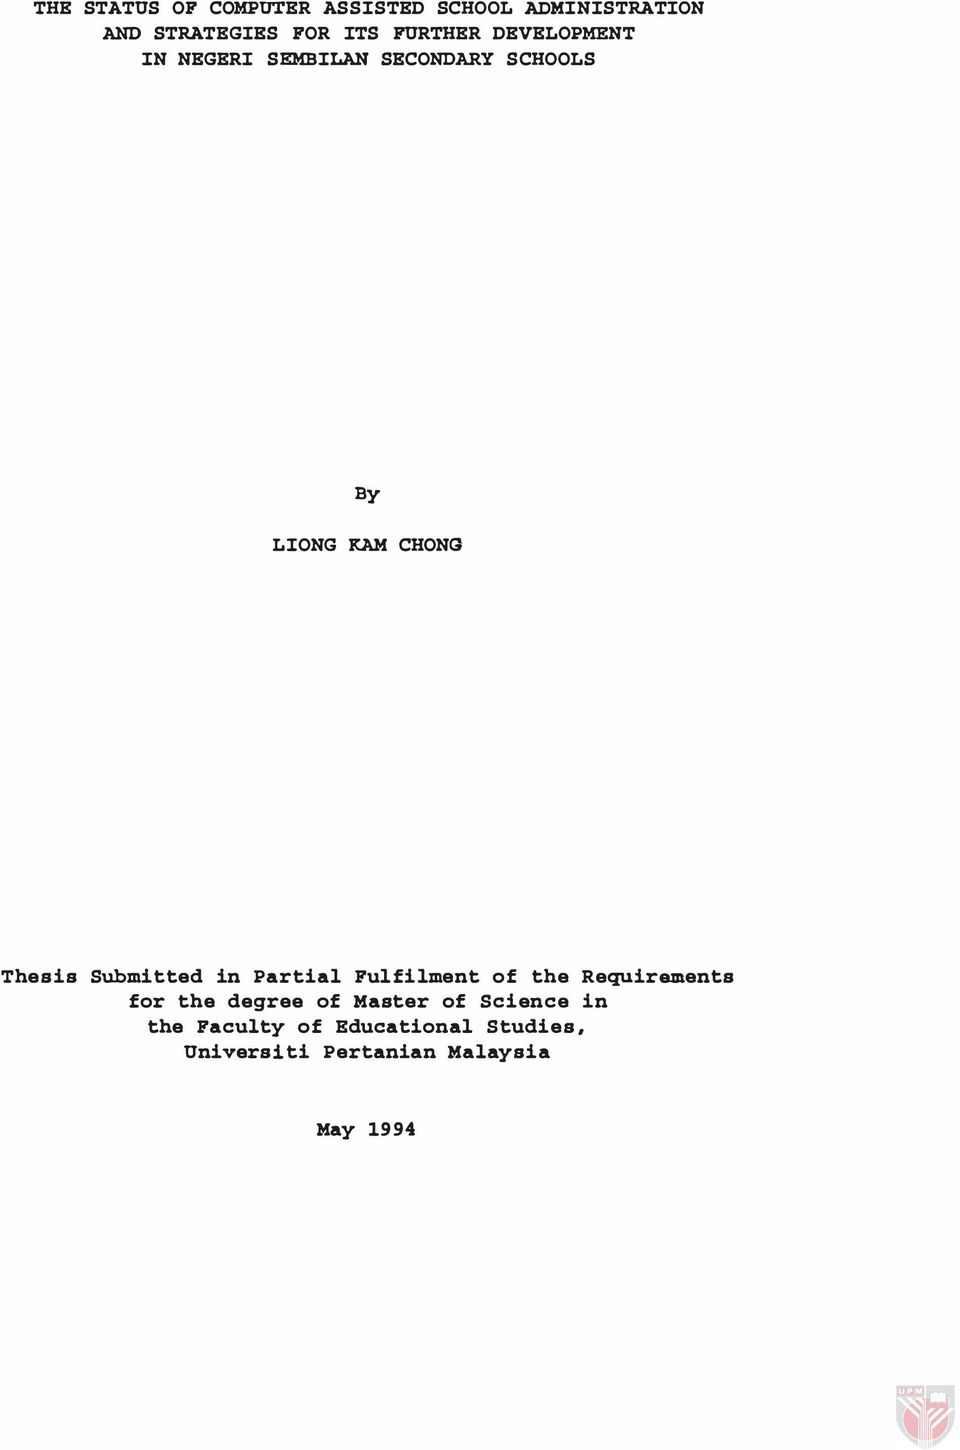 Thesis Submitted in Partial Ful filment of the Requirements for the degree of